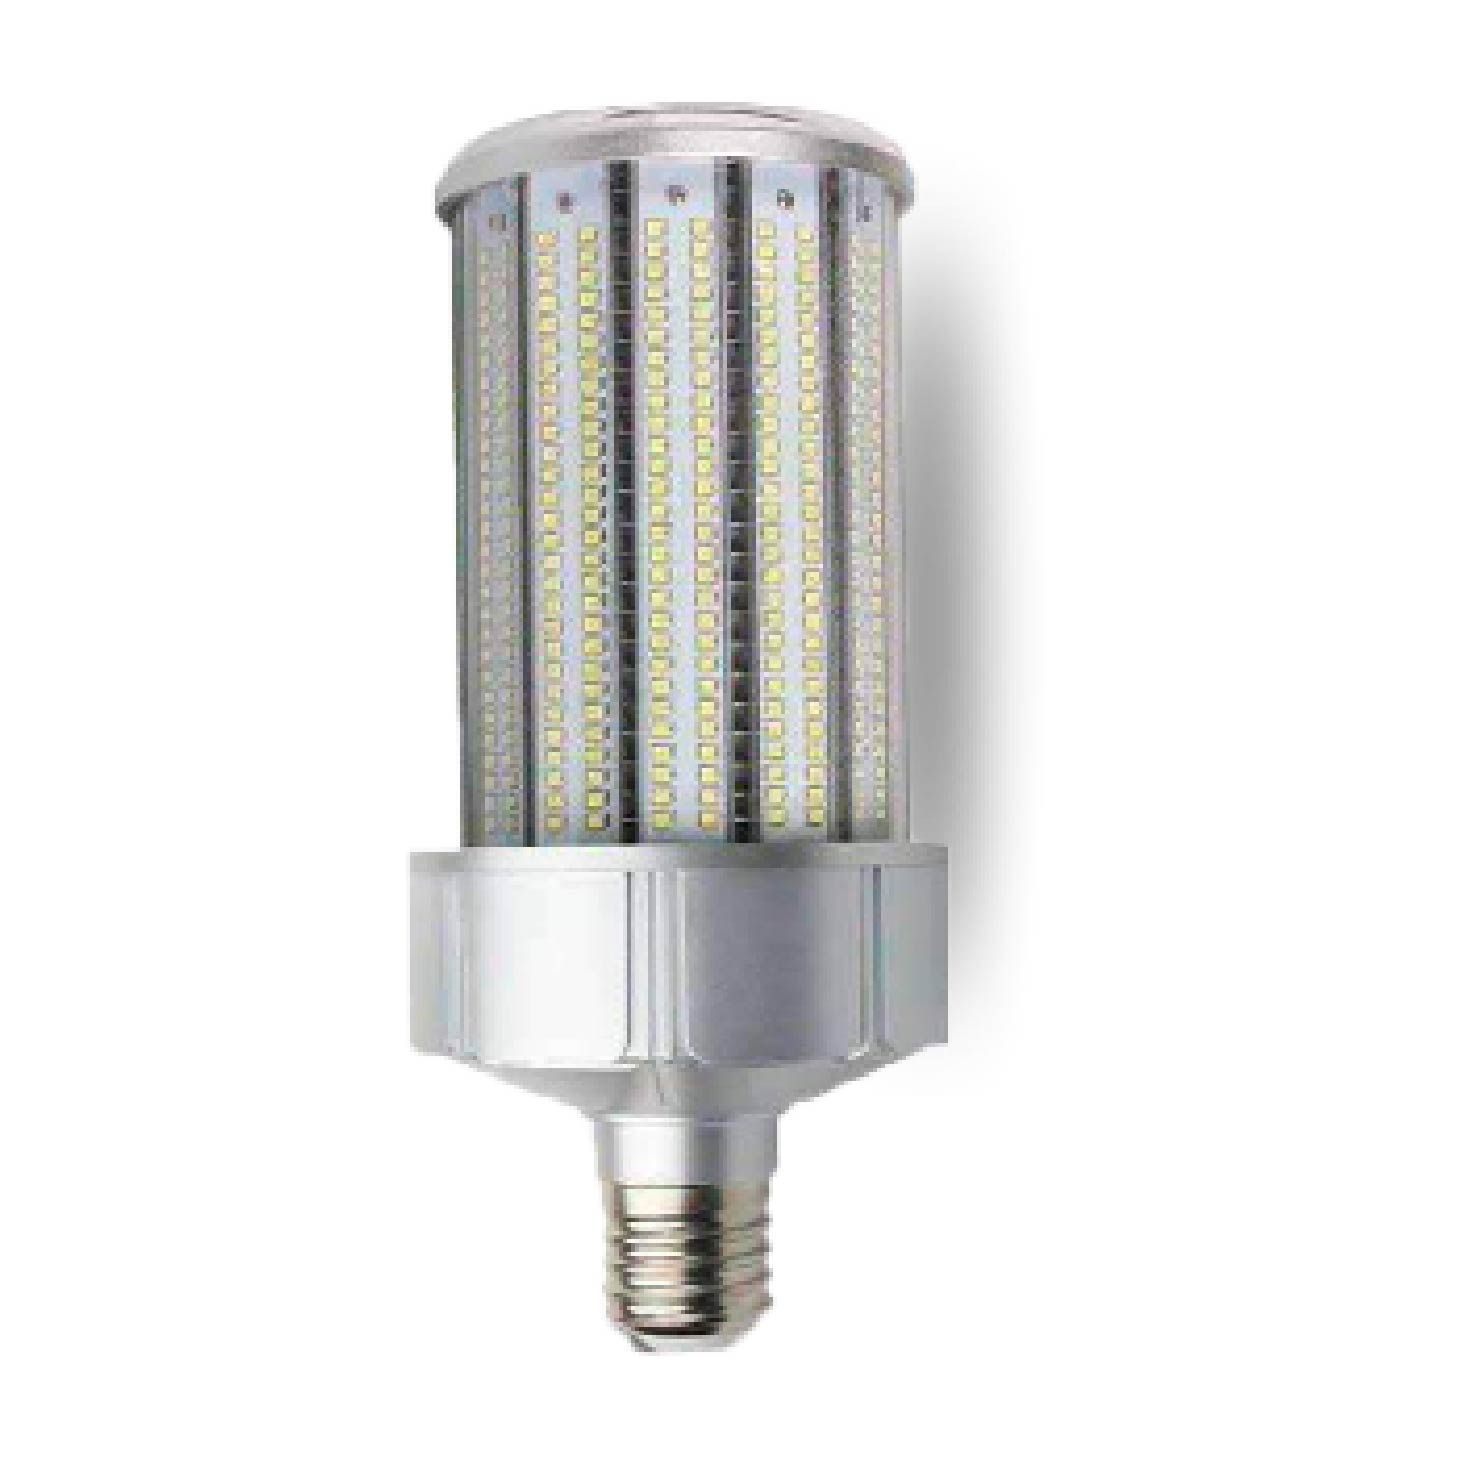 Get Free Shipping On Purchase Led Corn Bulb 20w From Ledmyplace In Ca Suitable To Both Commercial And Industrial Applications An L Bulb Outdoor Lighting Led